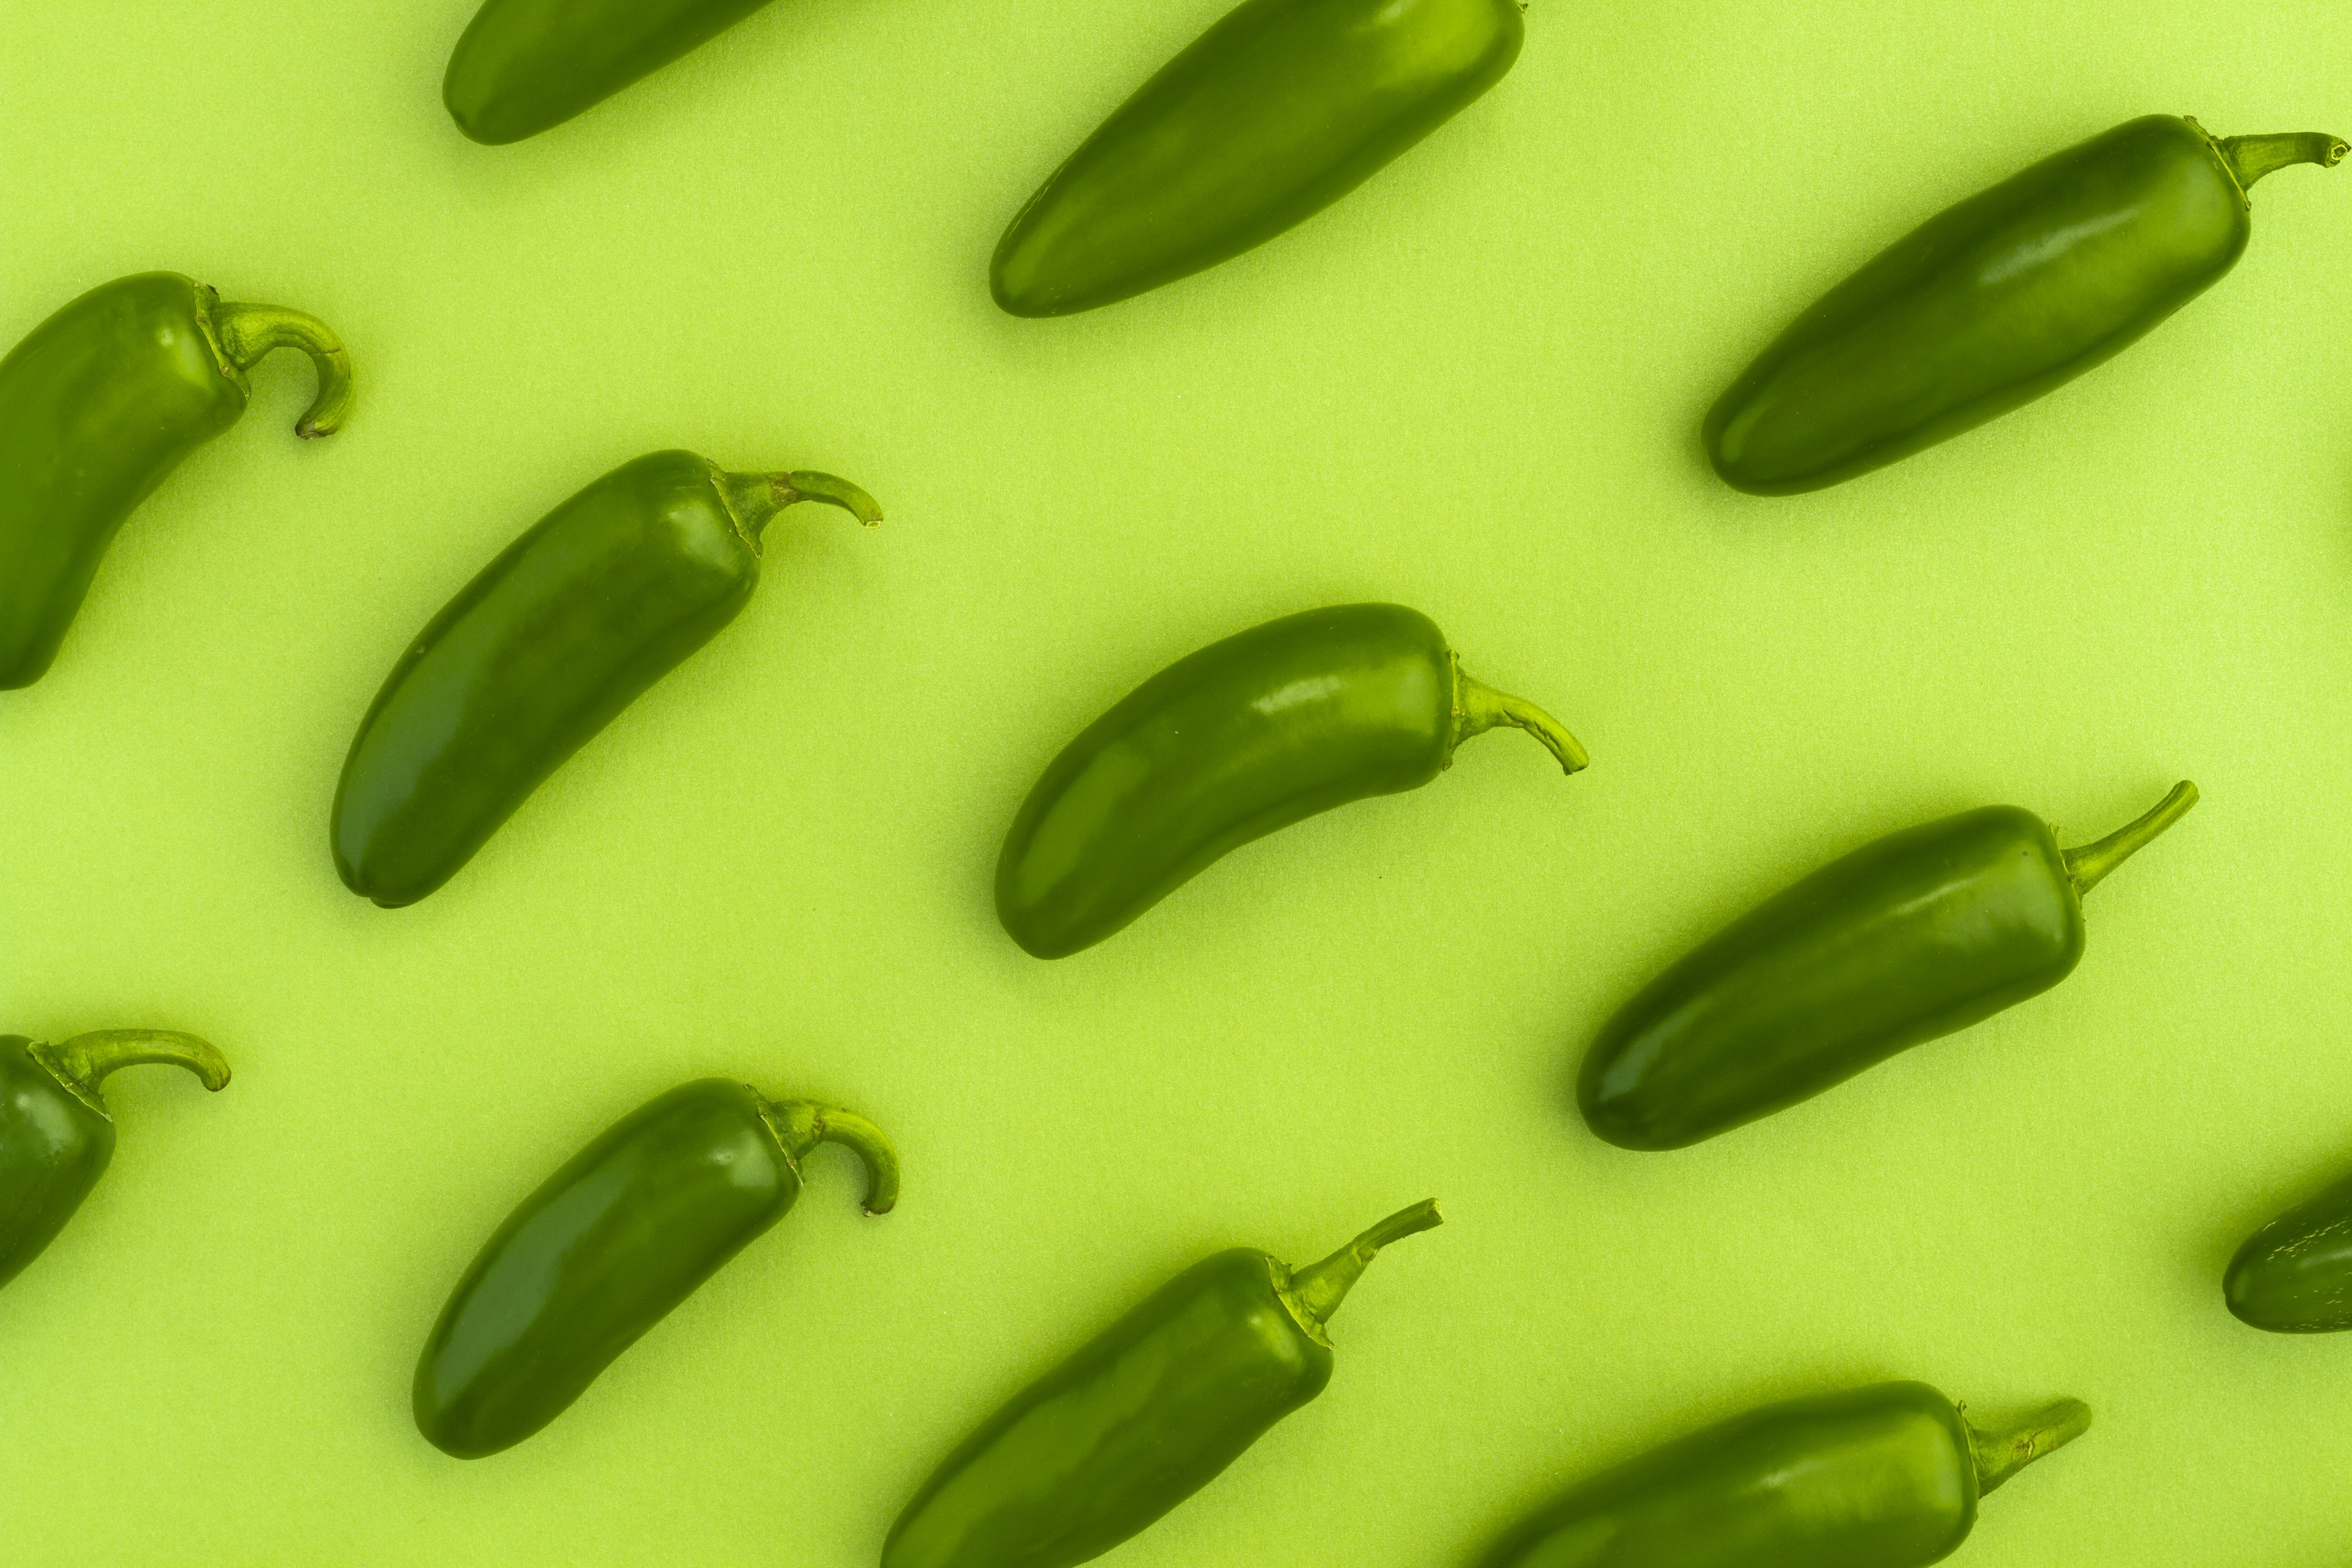 Jalapeno peppers on green background